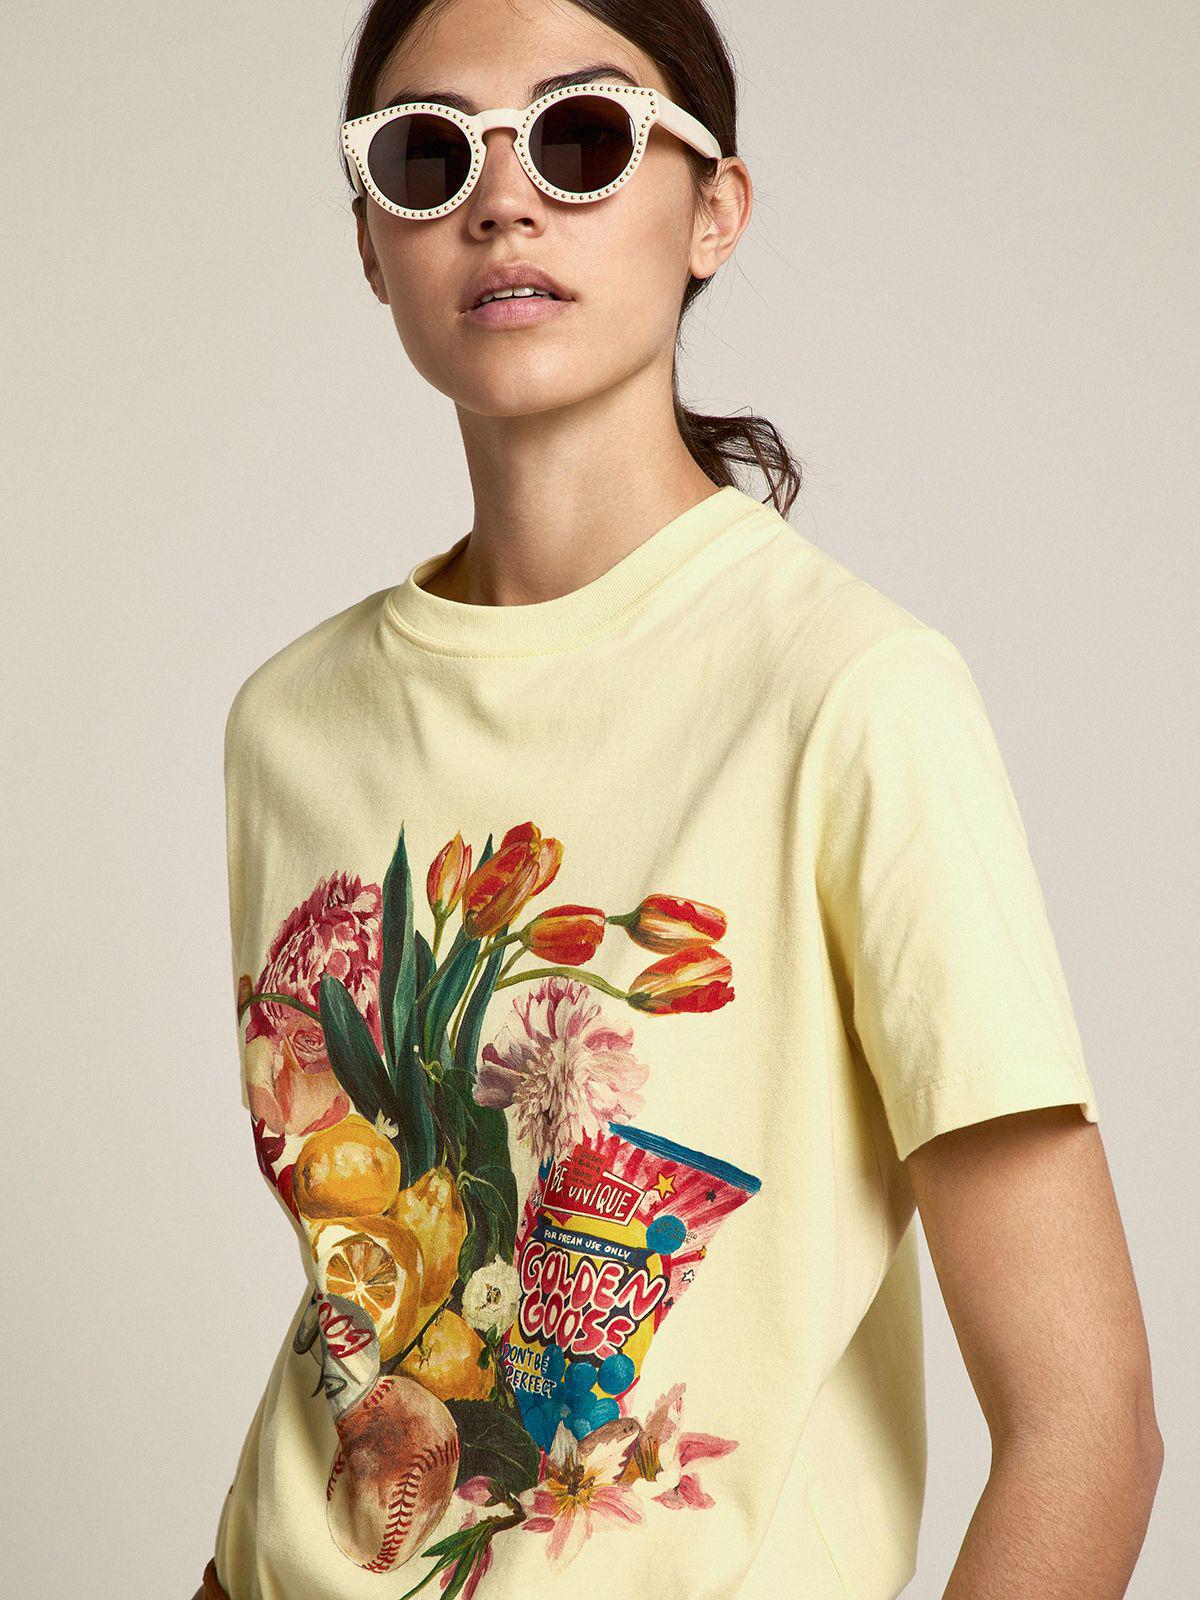 Pastel yellow Journey Collection T-shirt with colorful collage-style print